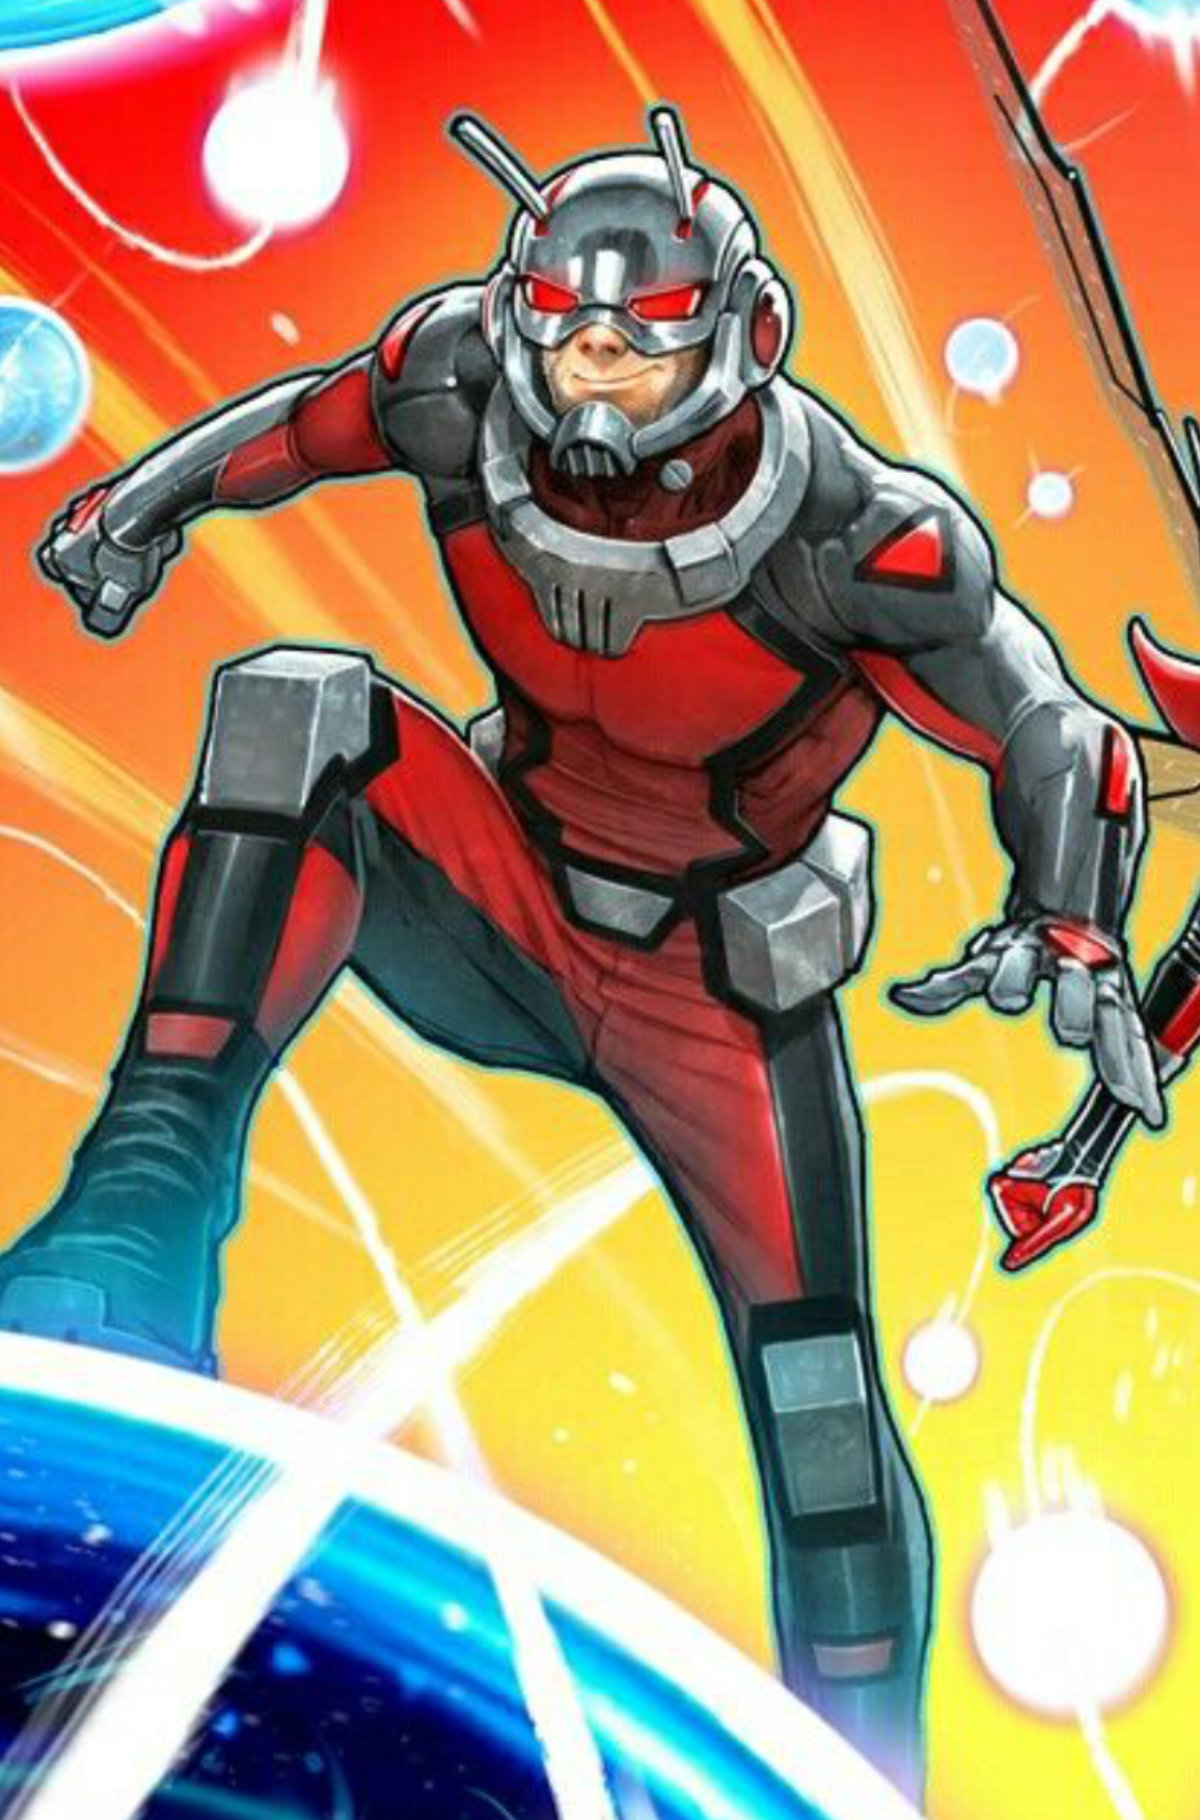 Ant Man is poised for adventure at atomikpop.com